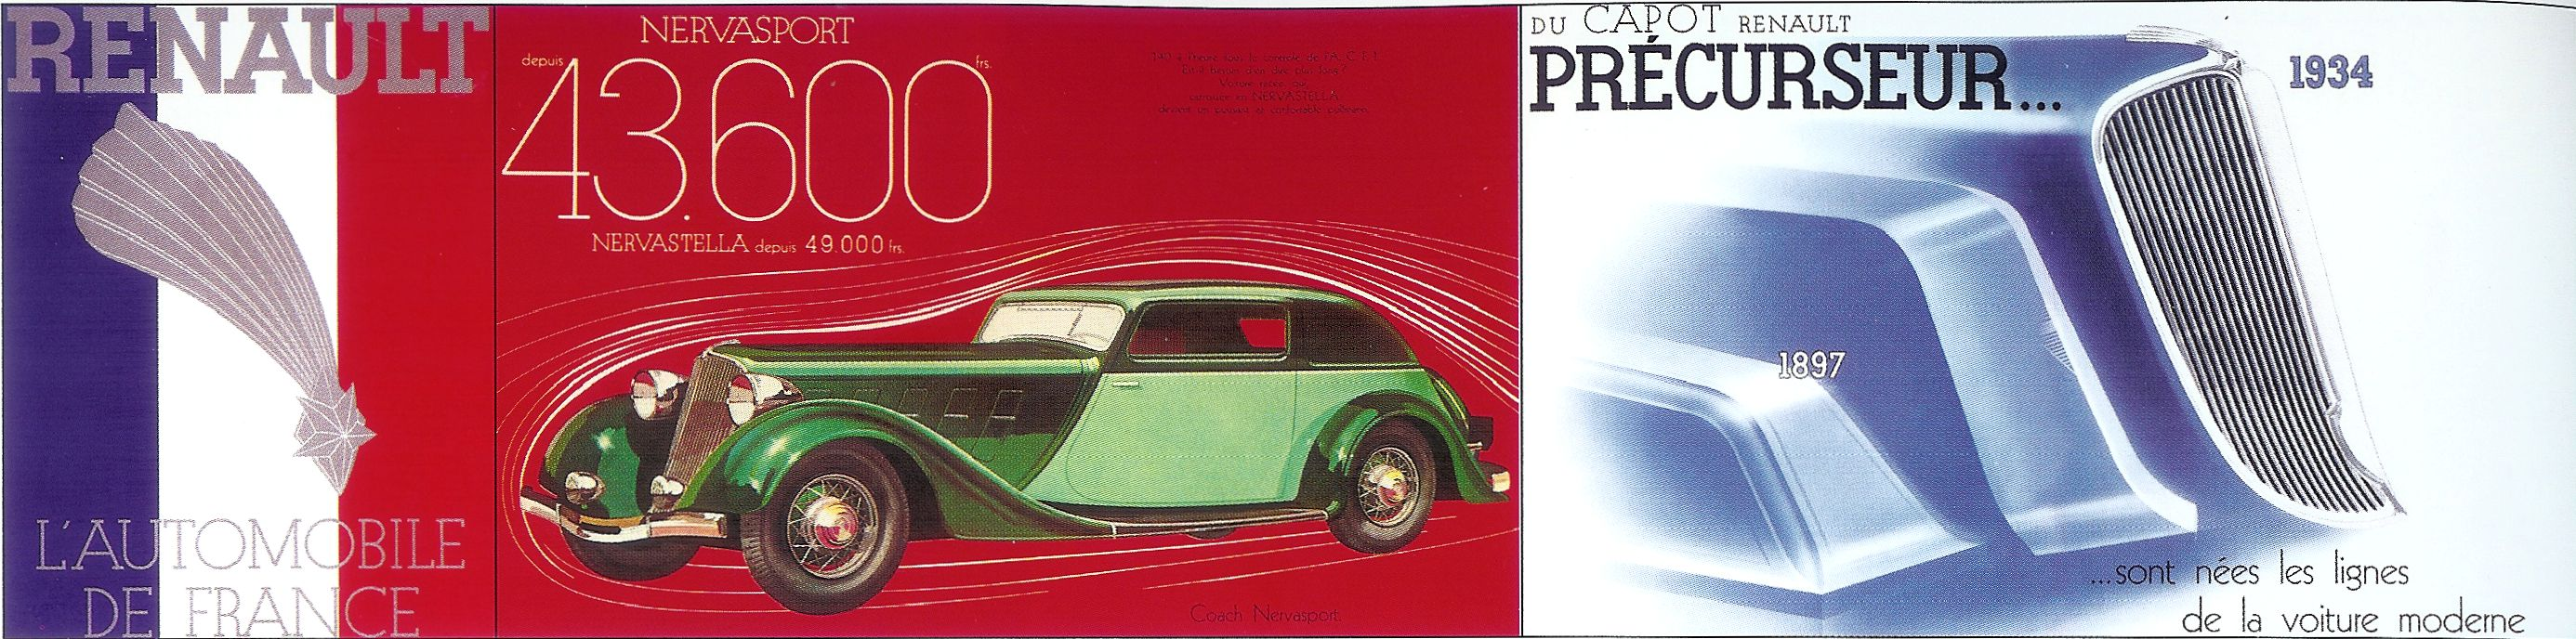 andria_13_catalogue_renault_1934